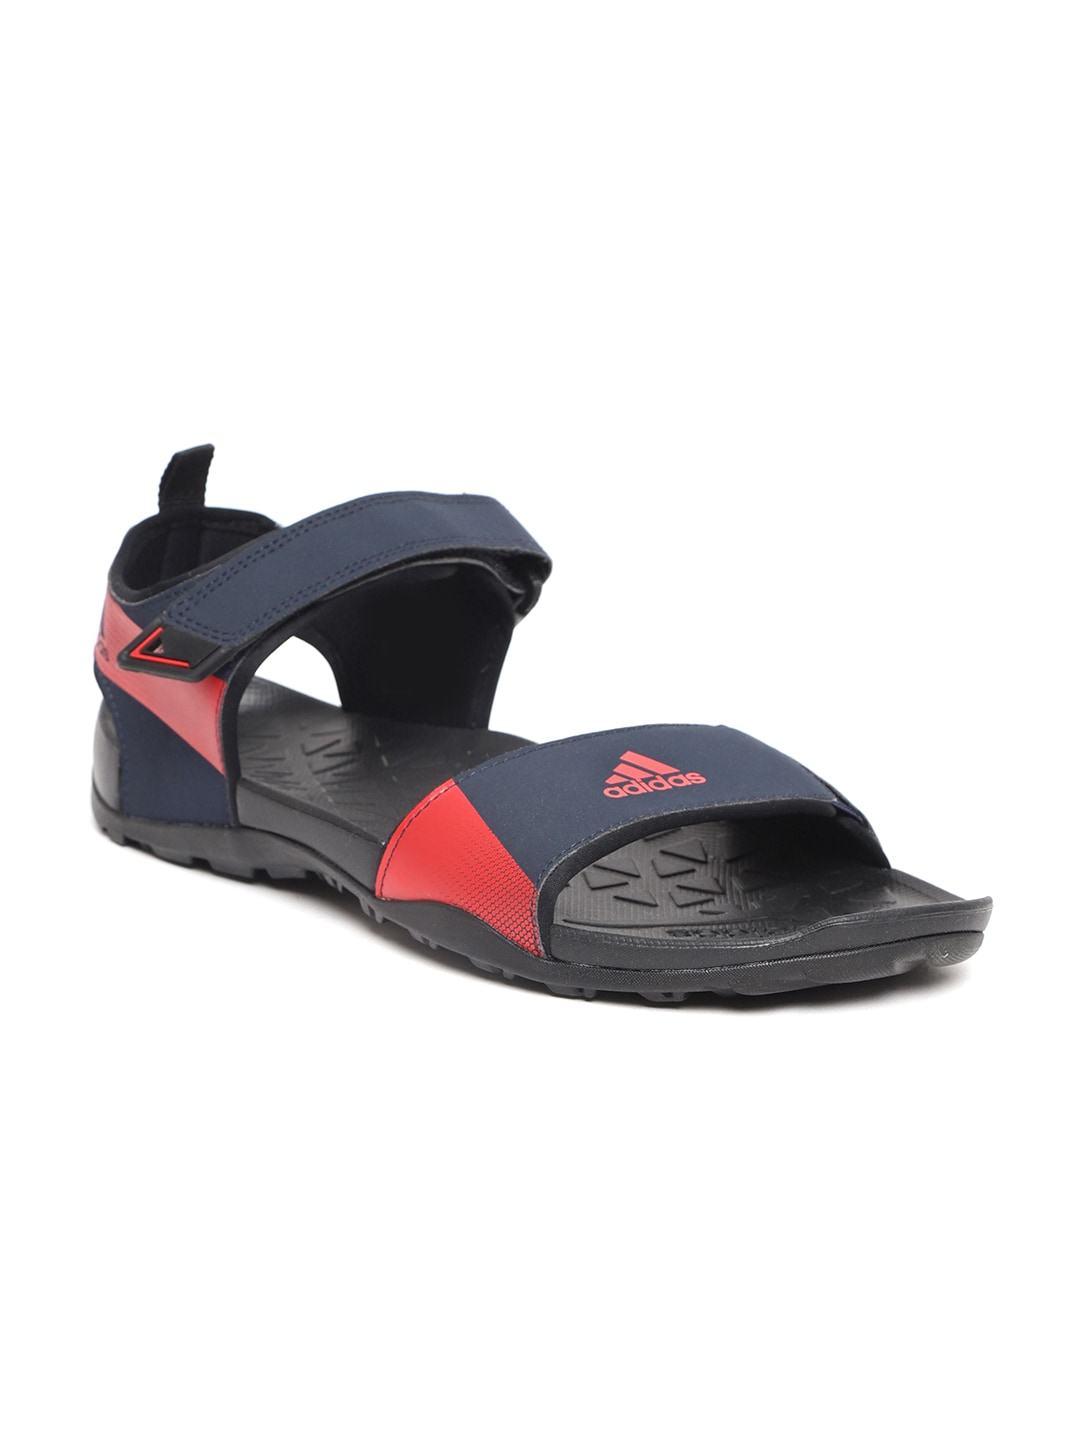 bba4a5c6f6c5 Adidas Kajal Sandals - Buy Adidas Kajal Sandals online in India